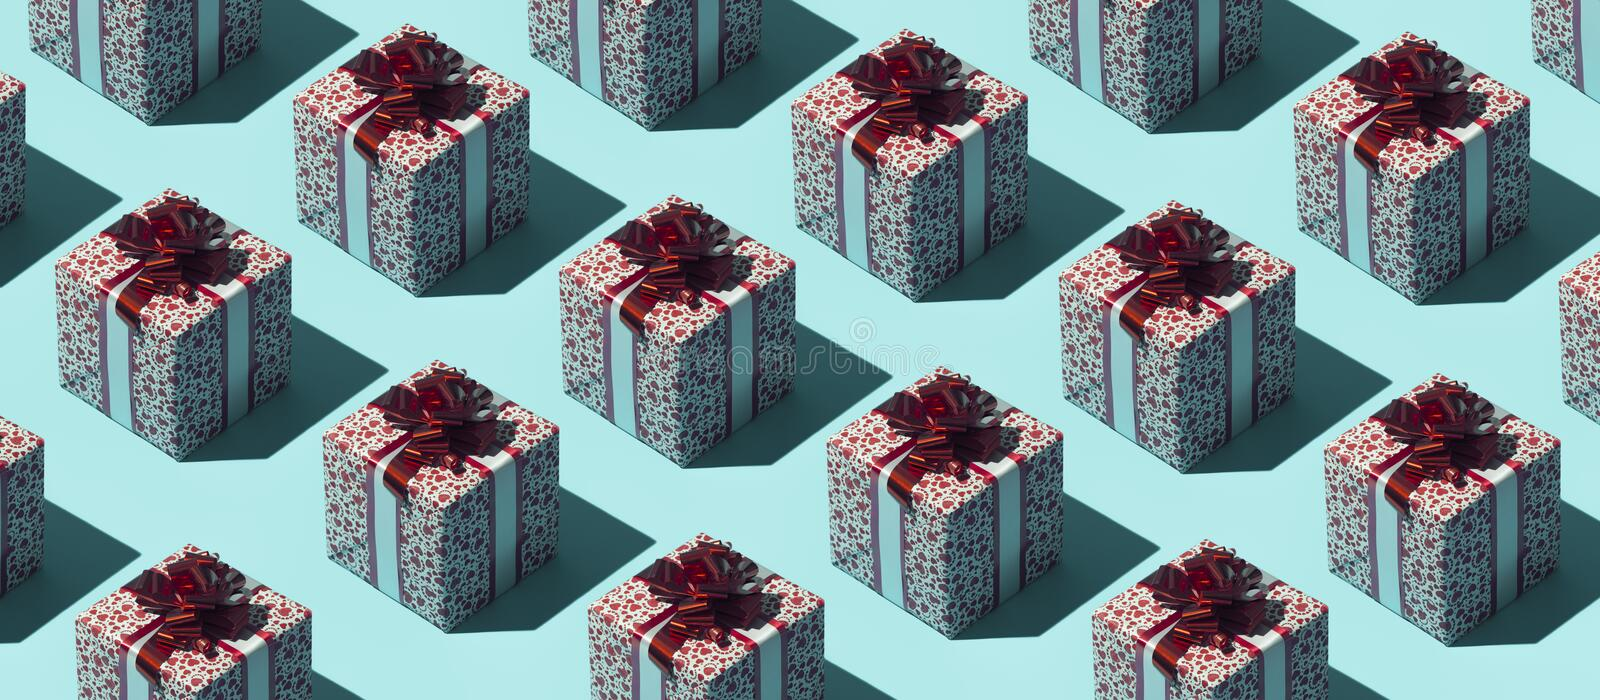 Gift boxes background royalty free stock photography